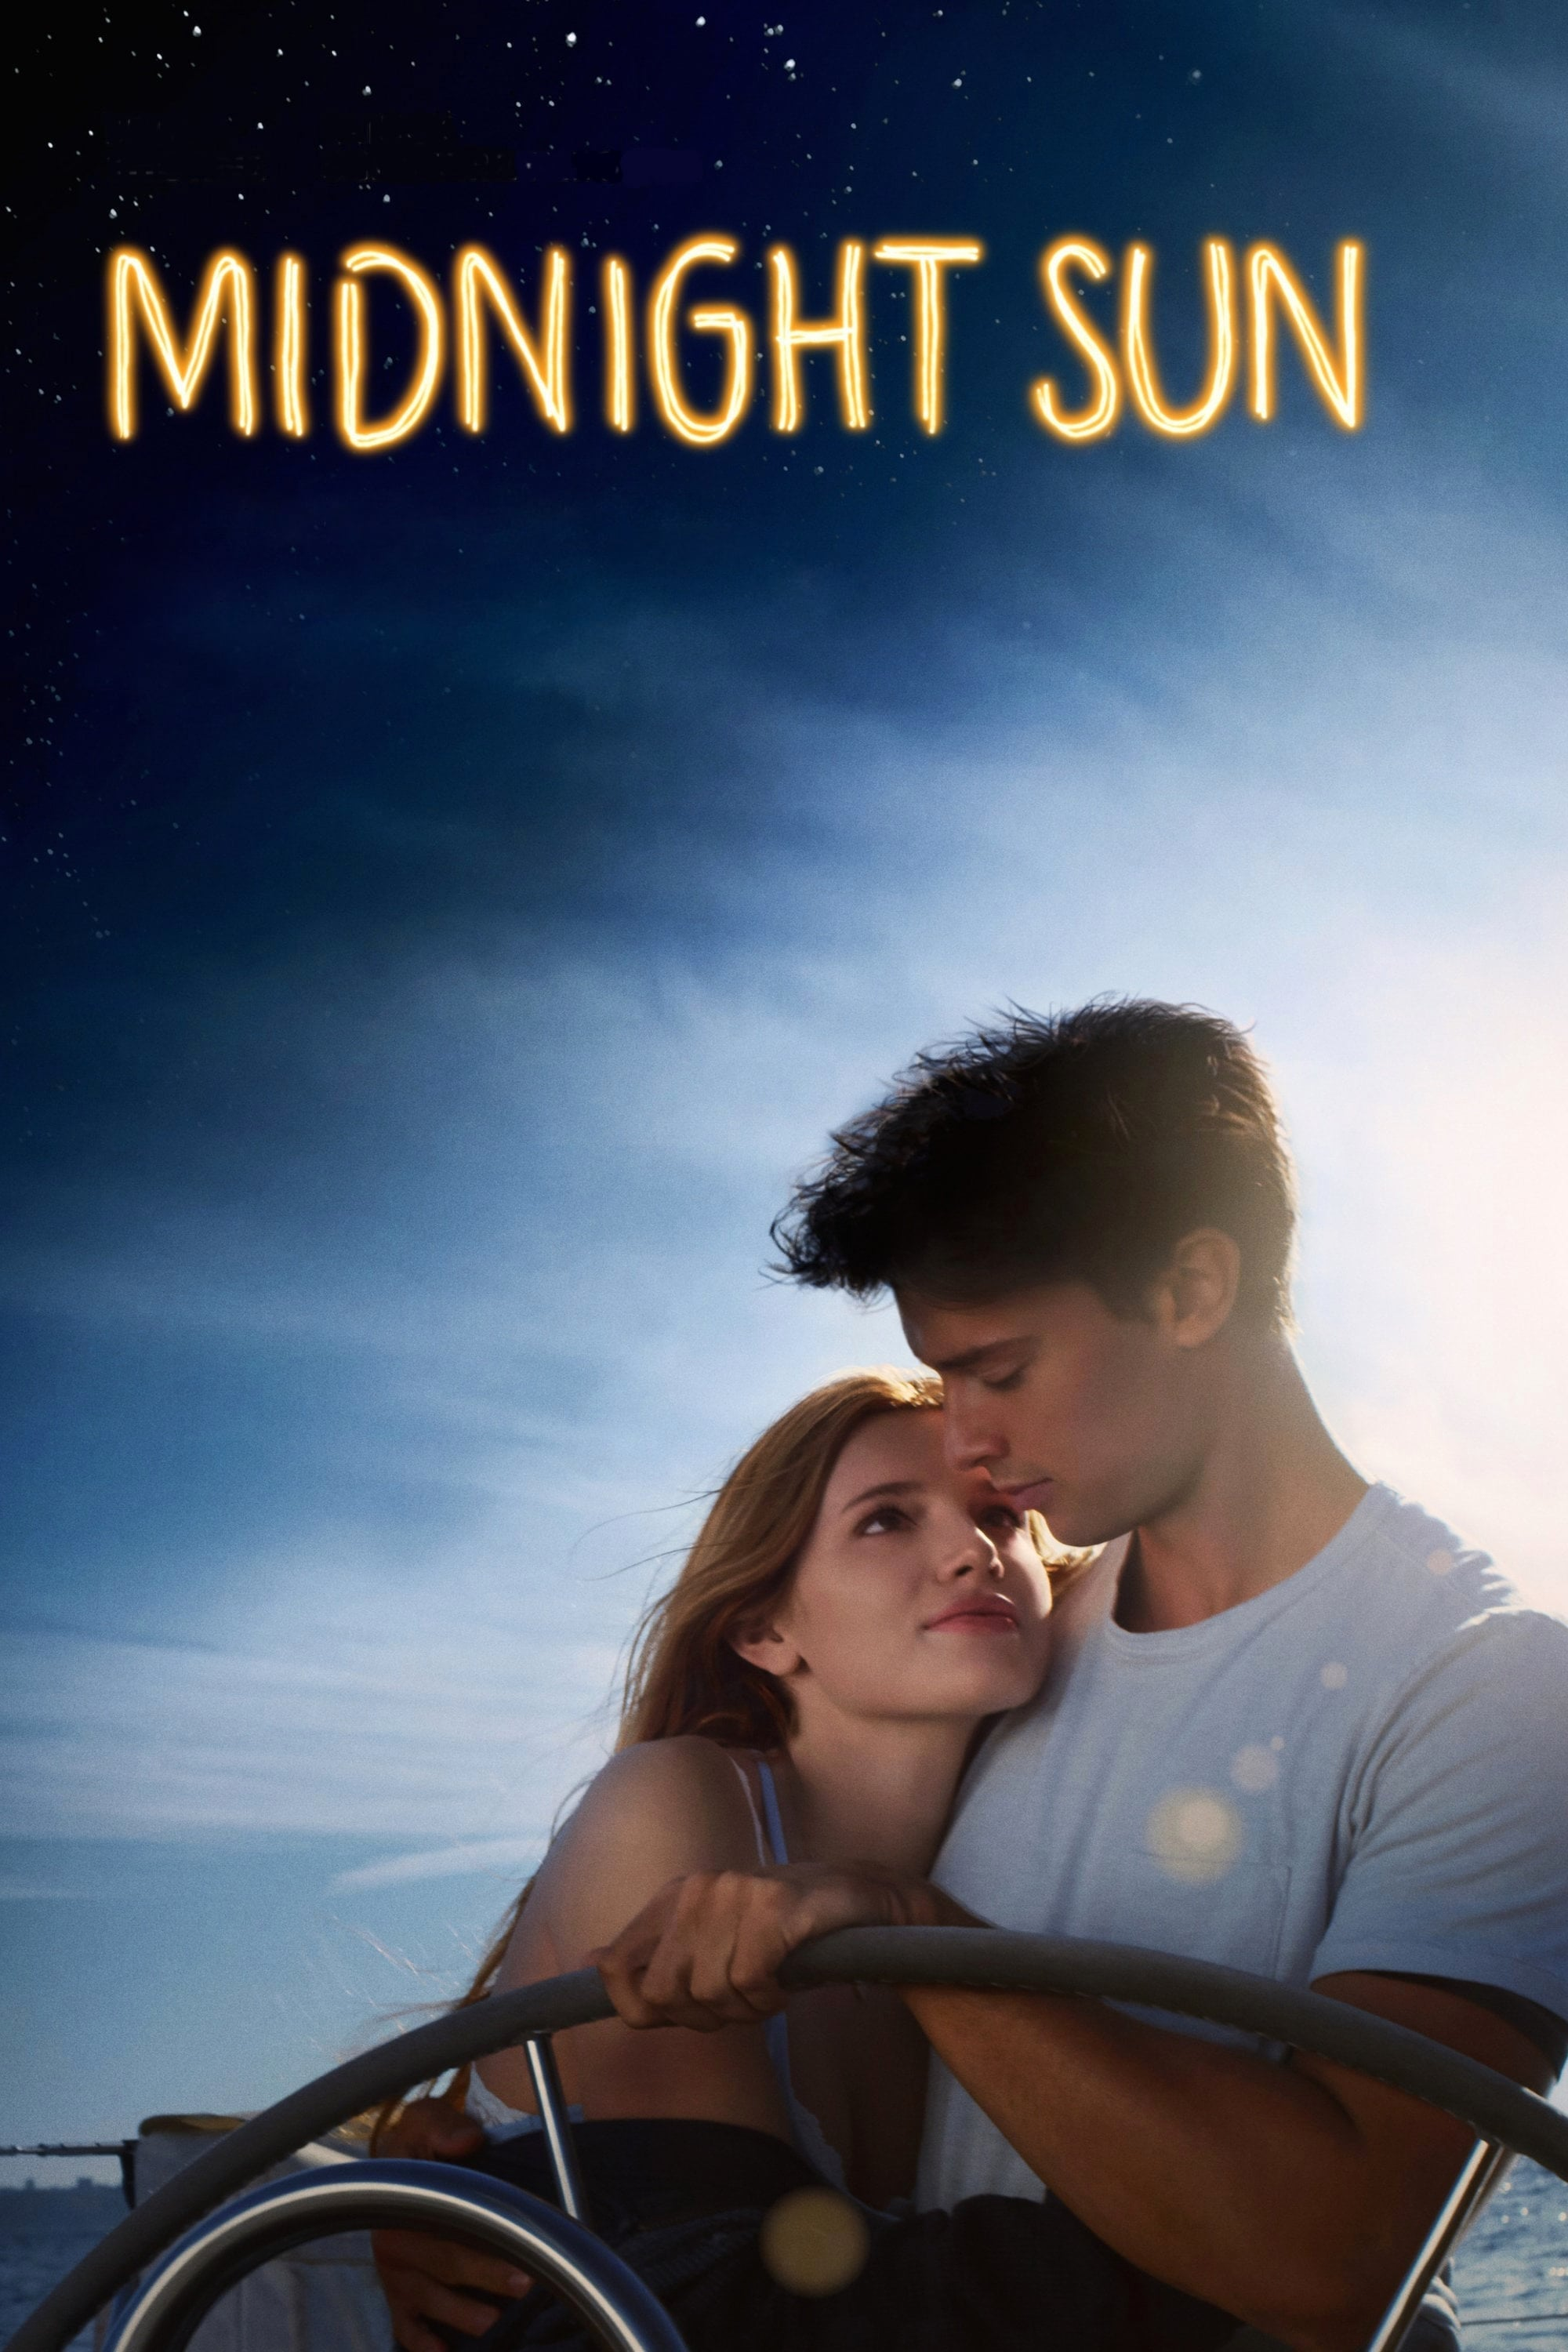 image for Midnight Sun